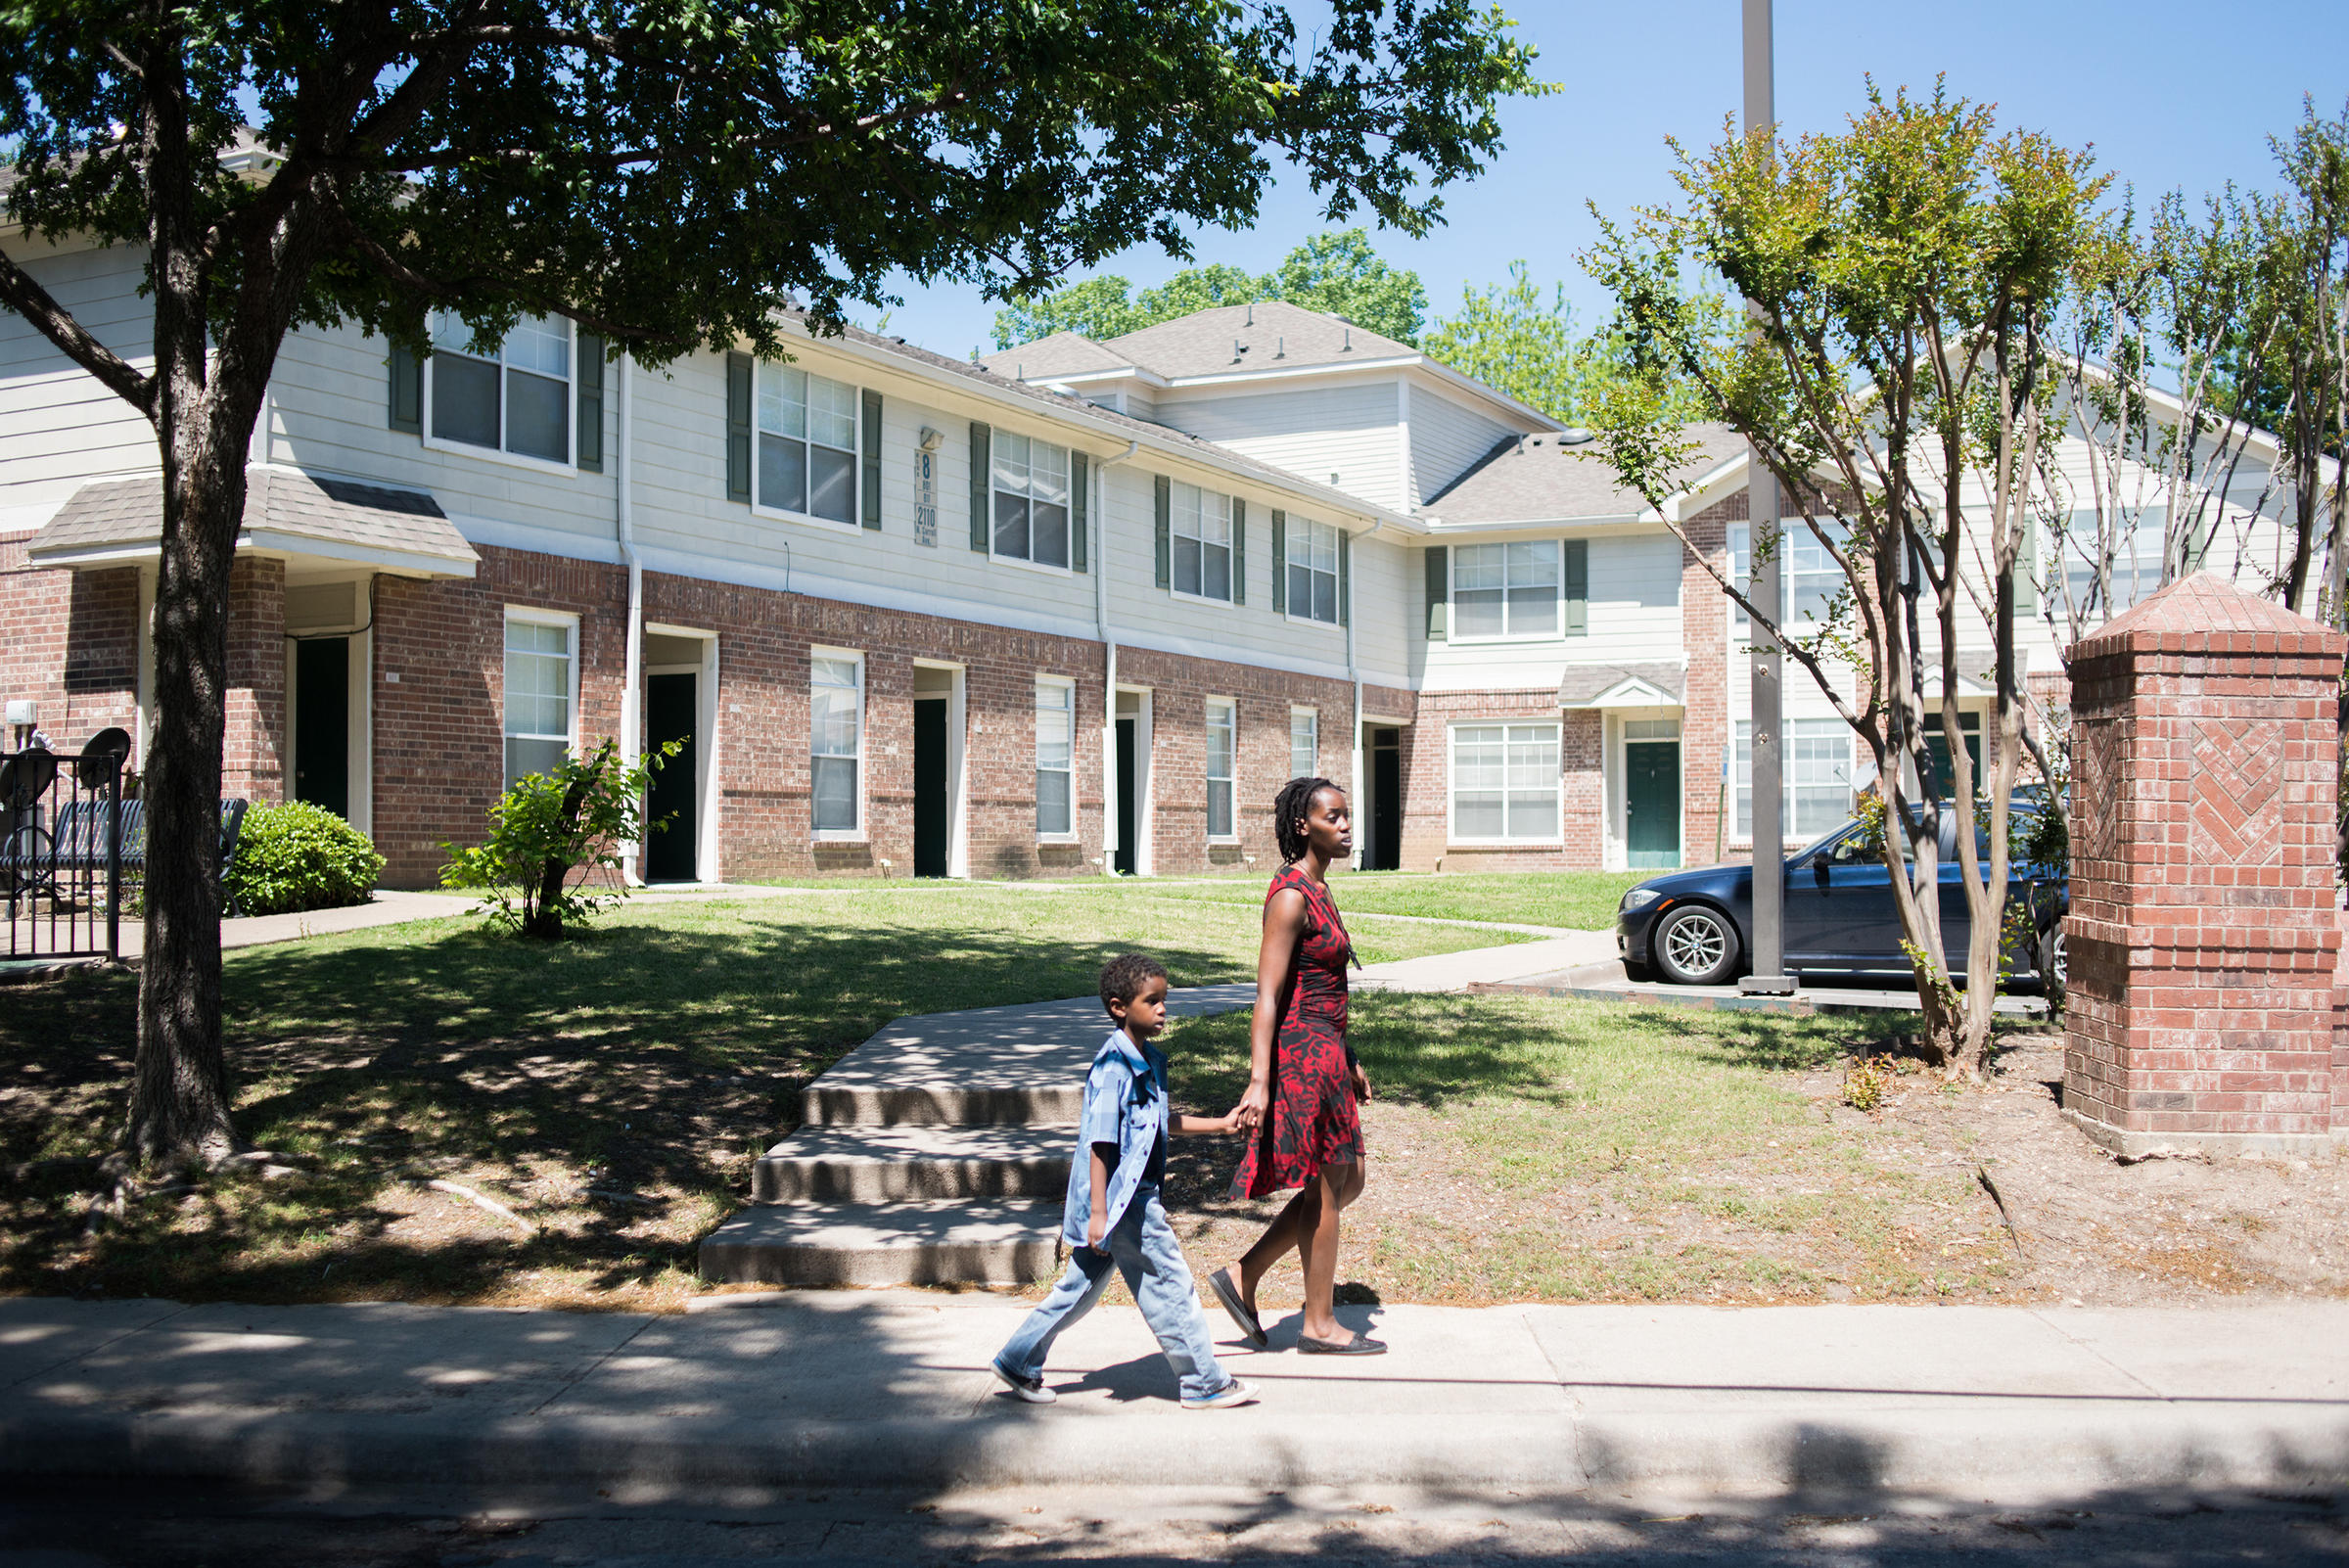 Section 8 Vouchers Help The Poor — But Only If Housing Is ...